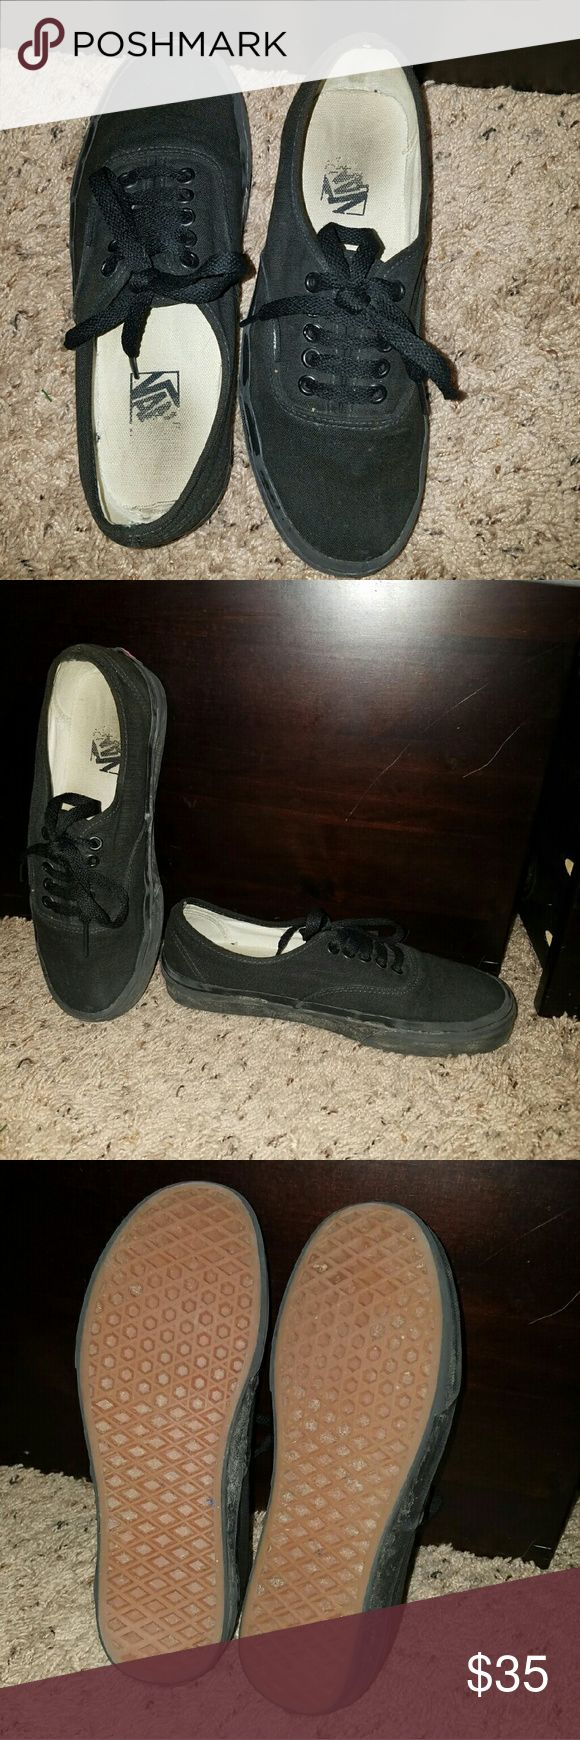 Vans skate shoes Black vans. Little tried mud on the sides but will be scrubbed before shipping Vans Shoes